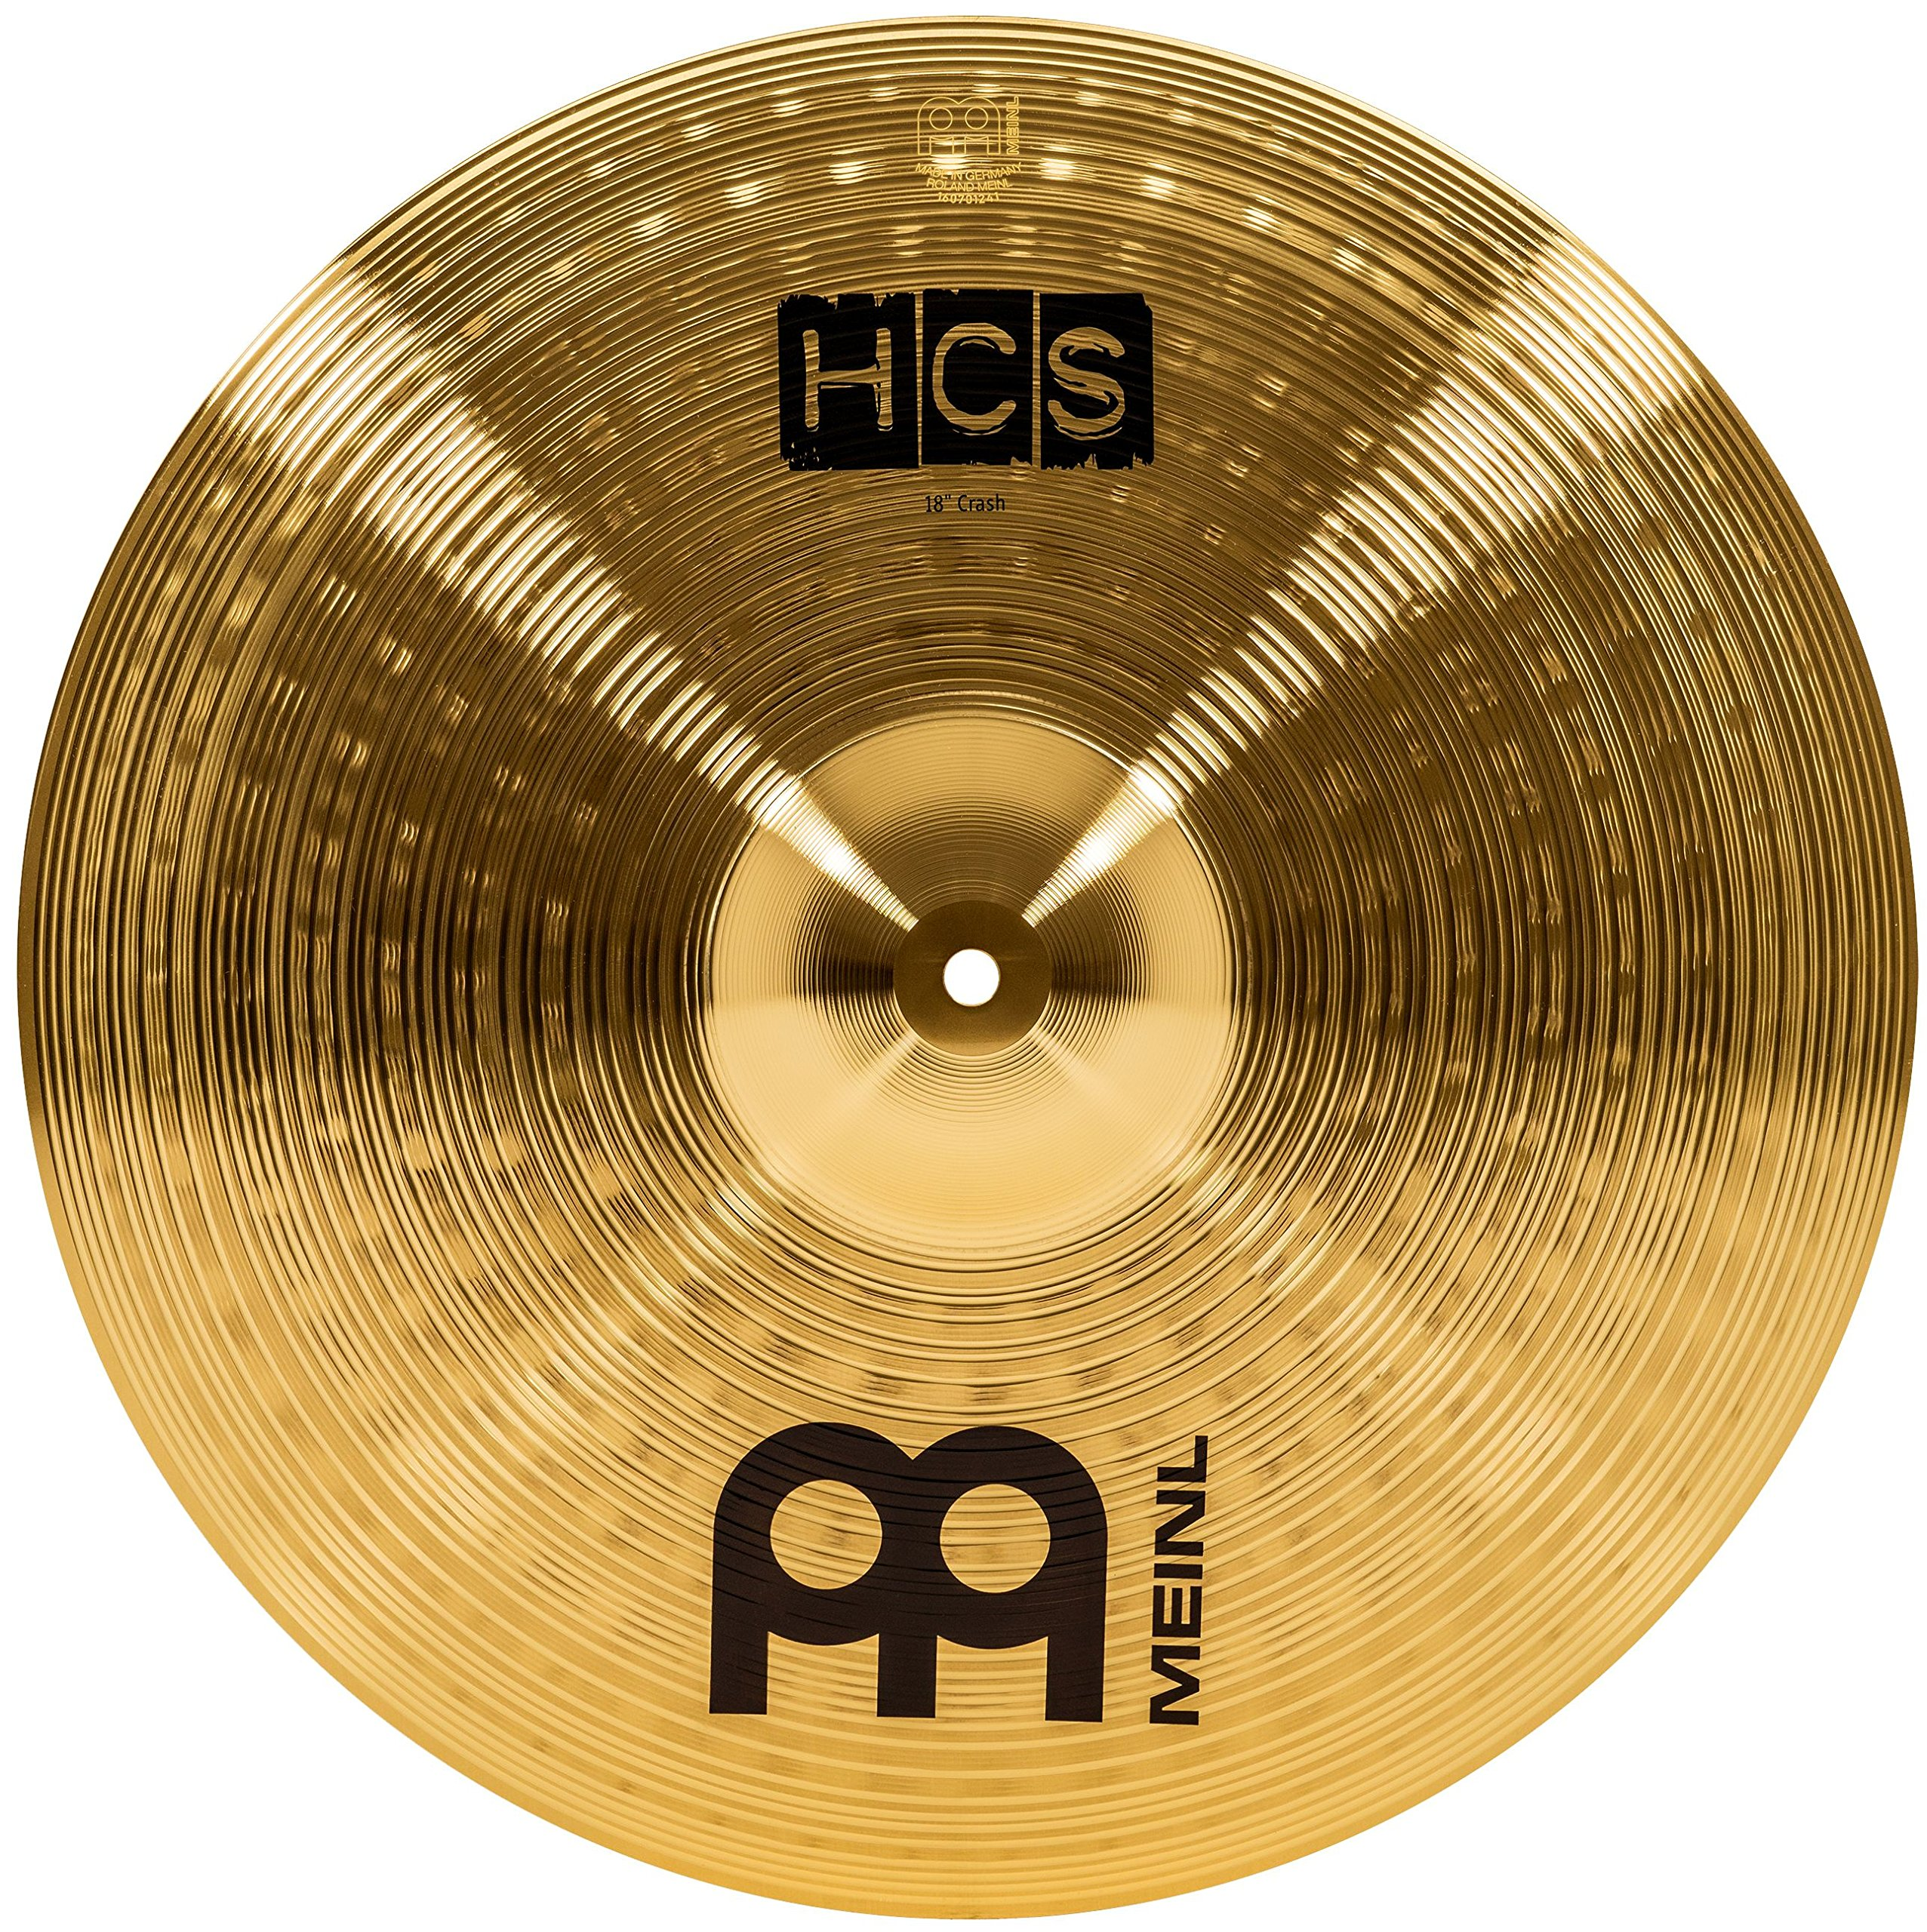 Meinl 18'' Crash Cymbal - HCS Traditional Finish Brass for Drum Set, Made In Germany, 2-YEAR WARRANTY (HCS18C) by Meinl Cymbals